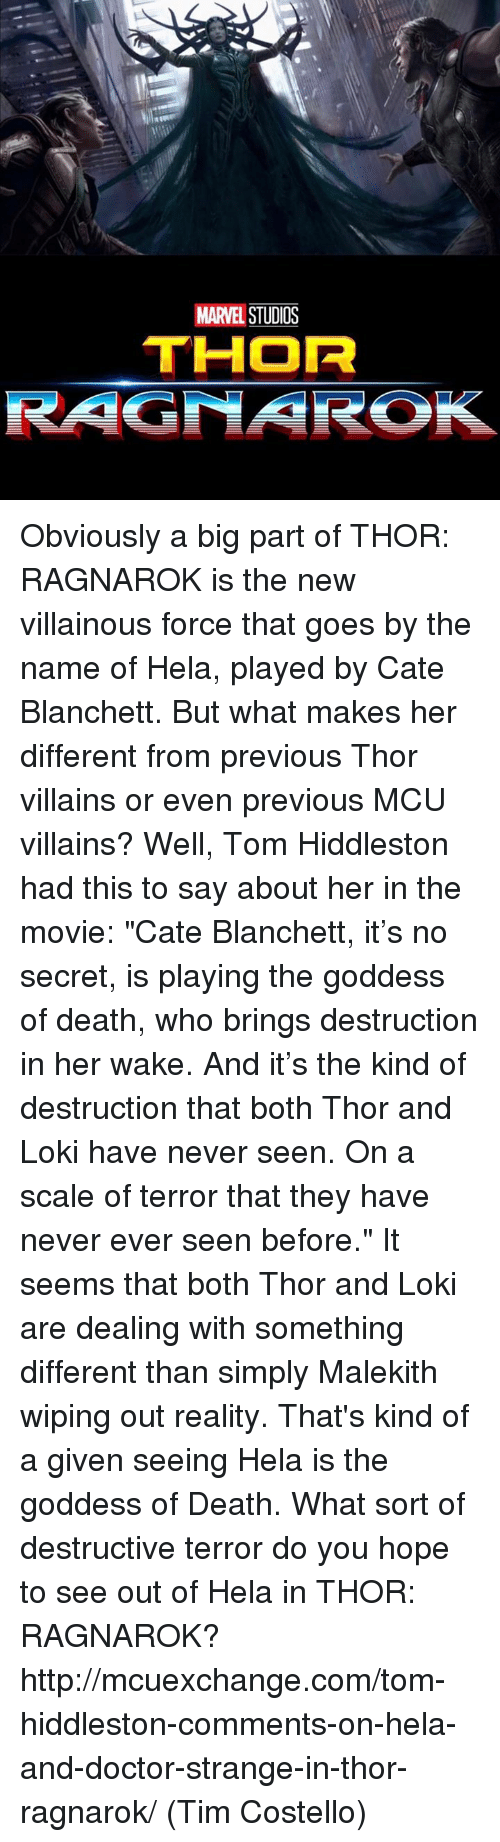 "Doctor, Memes, and Movies: MARVEL  STUDOS  THOR  RAGNAROK Obviously a big part of THOR: RAGNAROK is the new villainous force that goes by the name of Hela, played by Cate Blanchett. But what makes her different from previous Thor villains or even previous MCU villains?  Well, Tom Hiddleston had this to say about her in the movie: ""Cate Blanchett, it's no secret, is playing the goddess of death, who brings destruction in her wake. And it's the kind of destruction that both Thor and Loki have never seen. On a scale of terror that they have never ever seen before.""  It seems that both Thor and Loki are dealing with something different than simply Malekith wiping out reality. That's kind of a given seeing Hela is the goddess of Death. What sort of destructive terror do you hope to see out of Hela in THOR: RAGNAROK?  http://mcuexchange.com/tom-hiddleston-comments-on-hela-and-doctor-strange-in-thor-ragnarok/  (Tim Costello)"